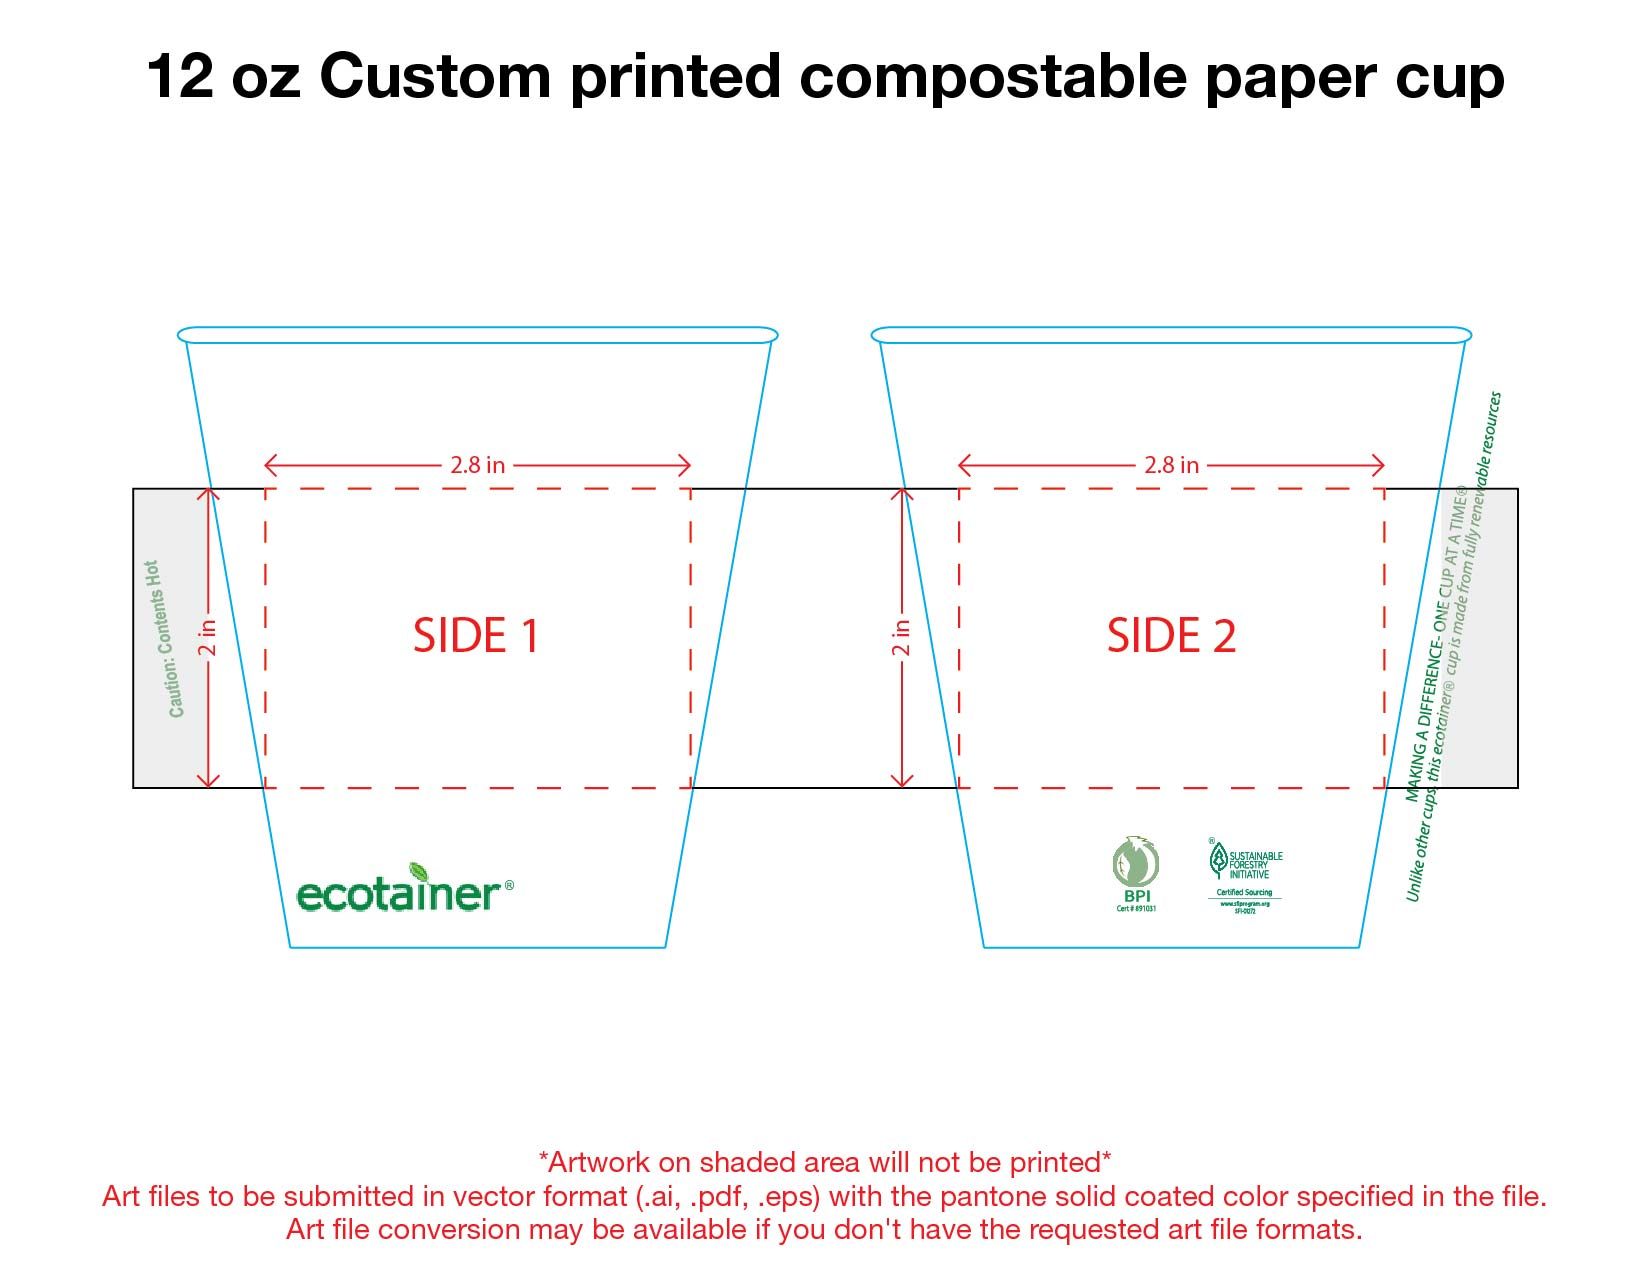 12 oz. Custom Printed Compostable Paper